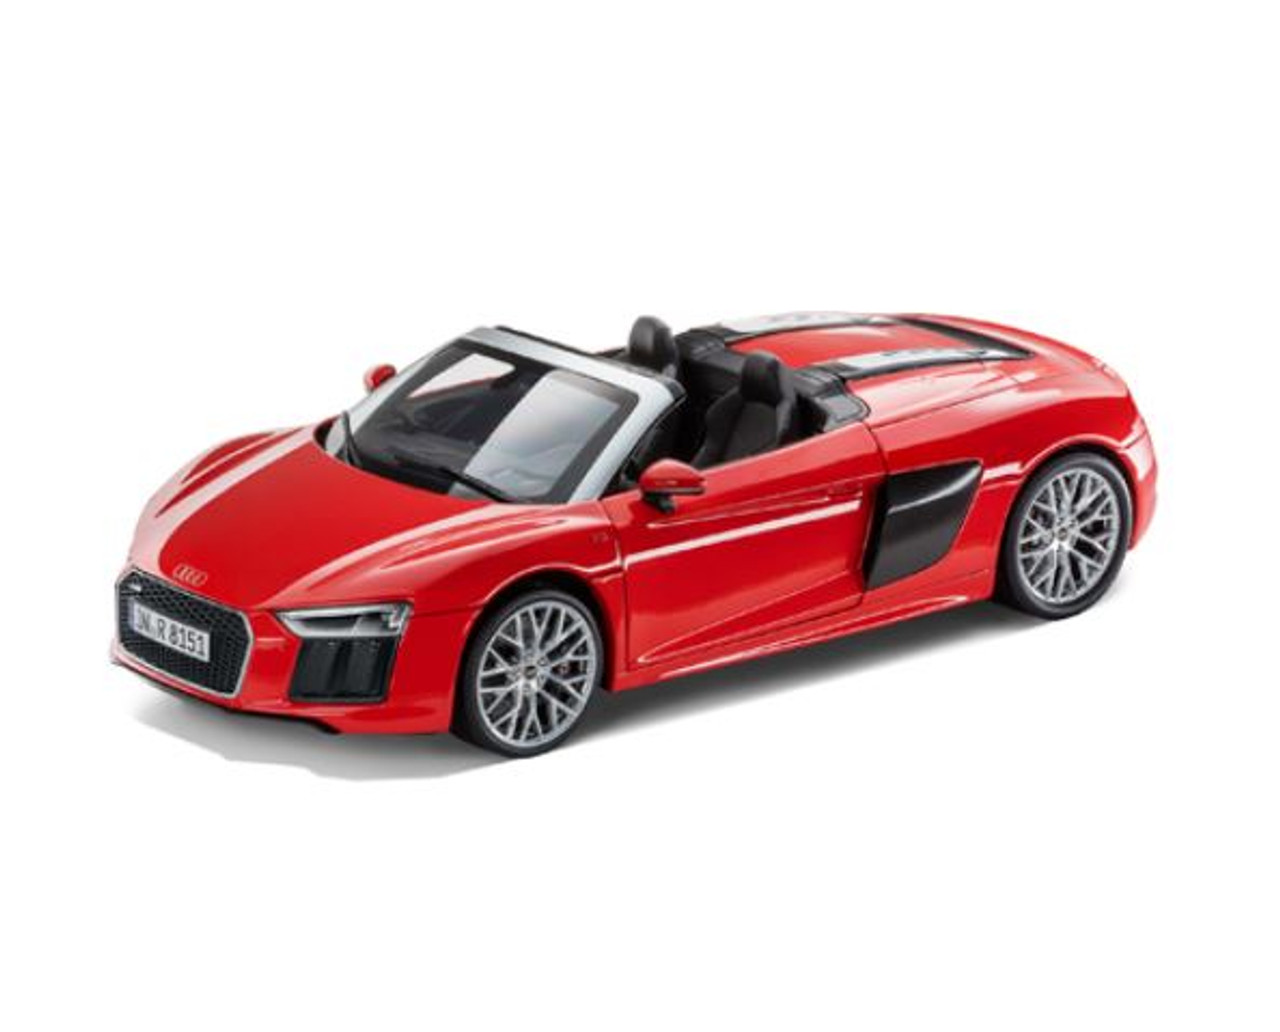 Genuine Audi R8 Spyder V10, Dynamite Red, 1:18 Pullback Model Car - 5011618552